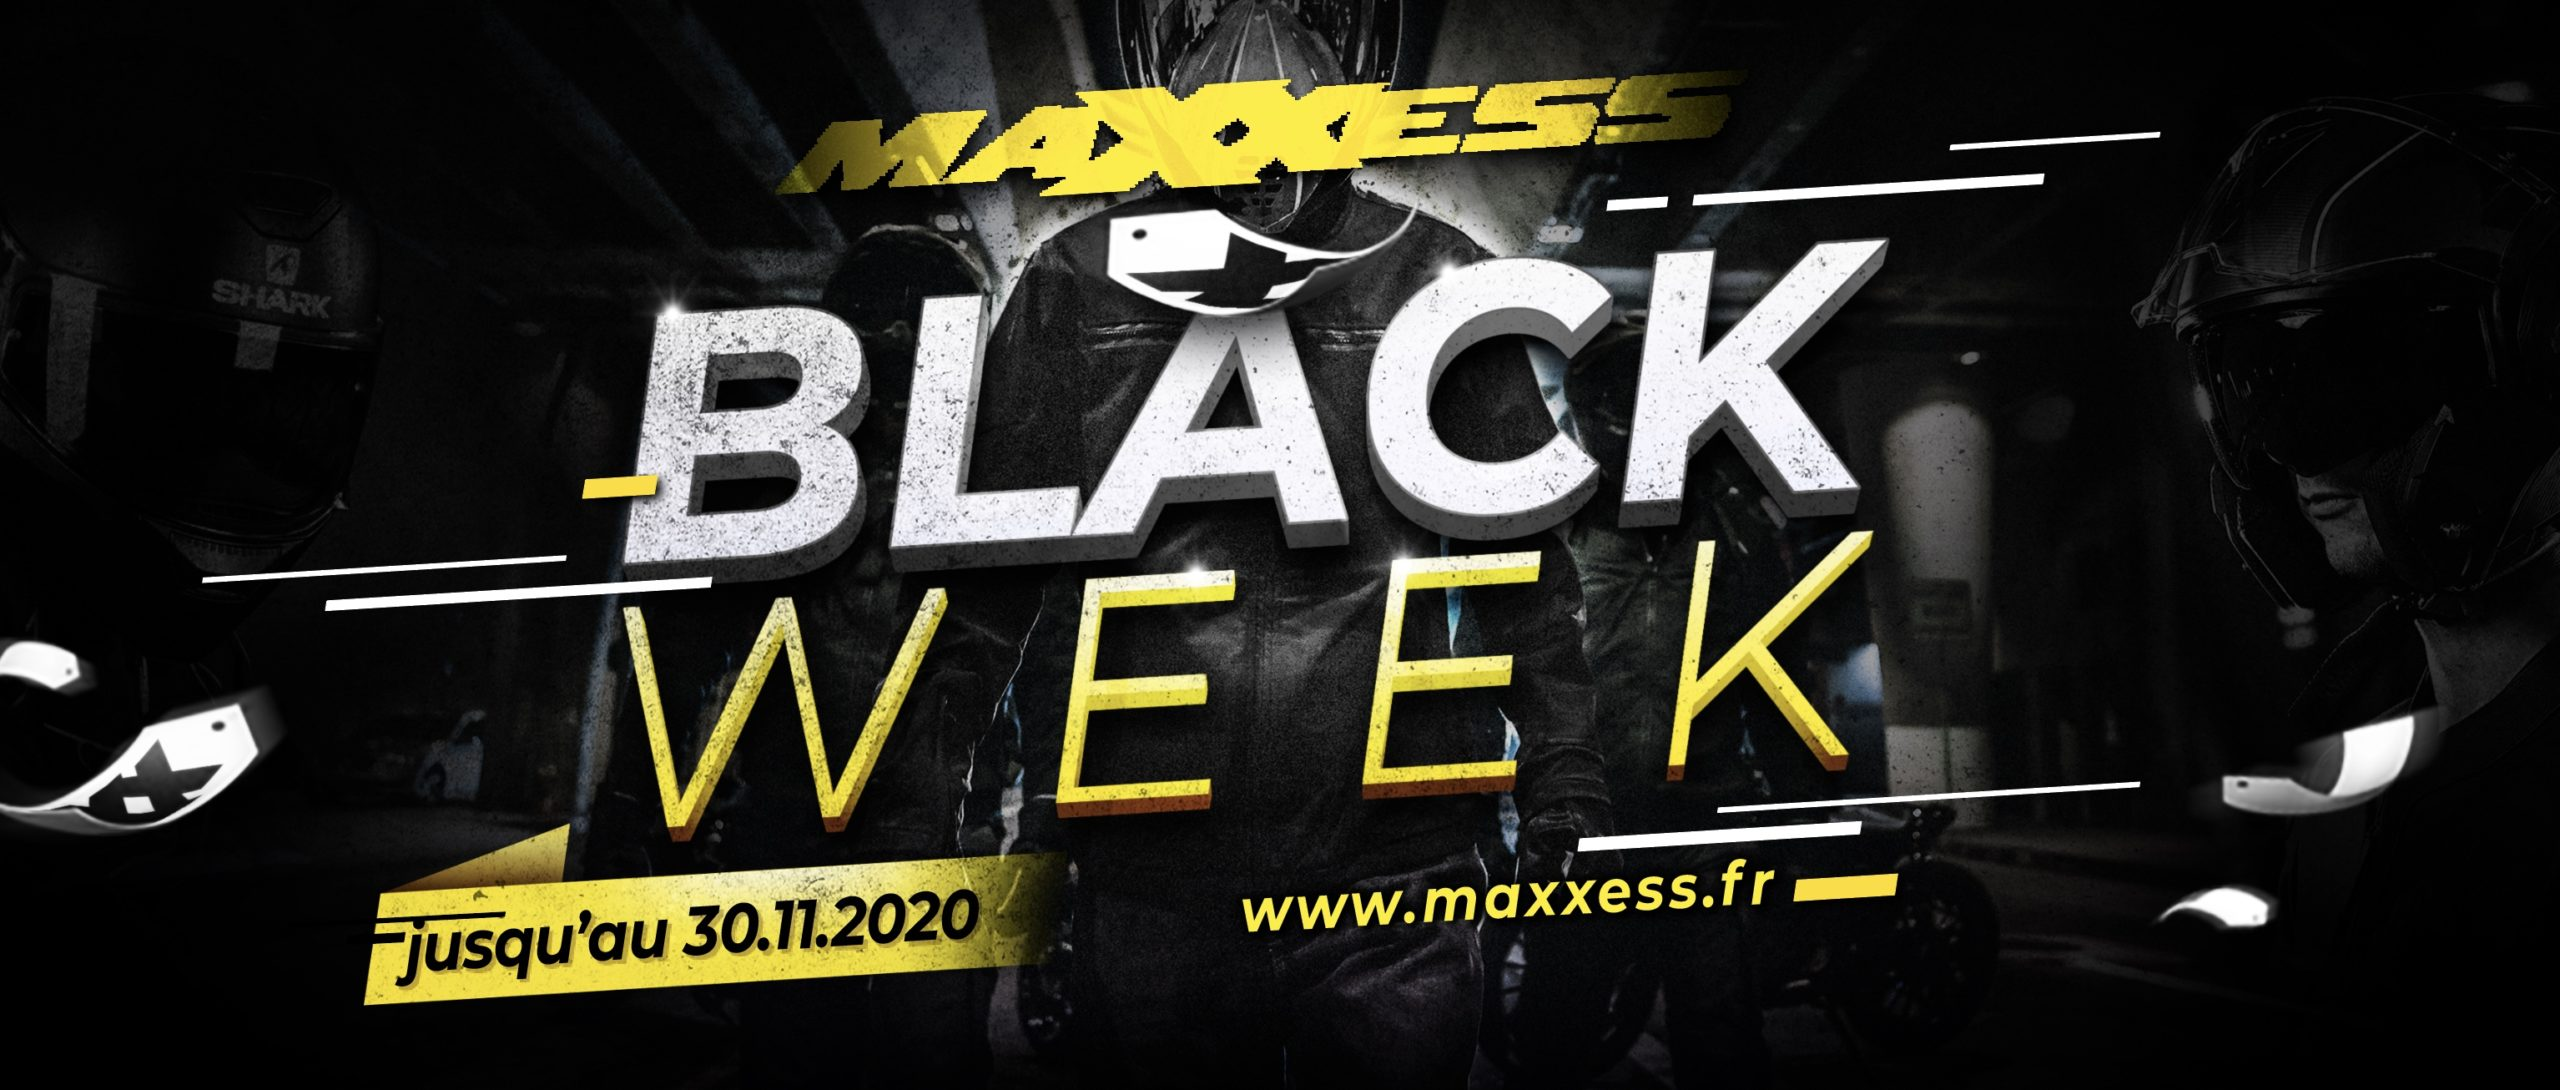 BLACK WEEK MAXXESS